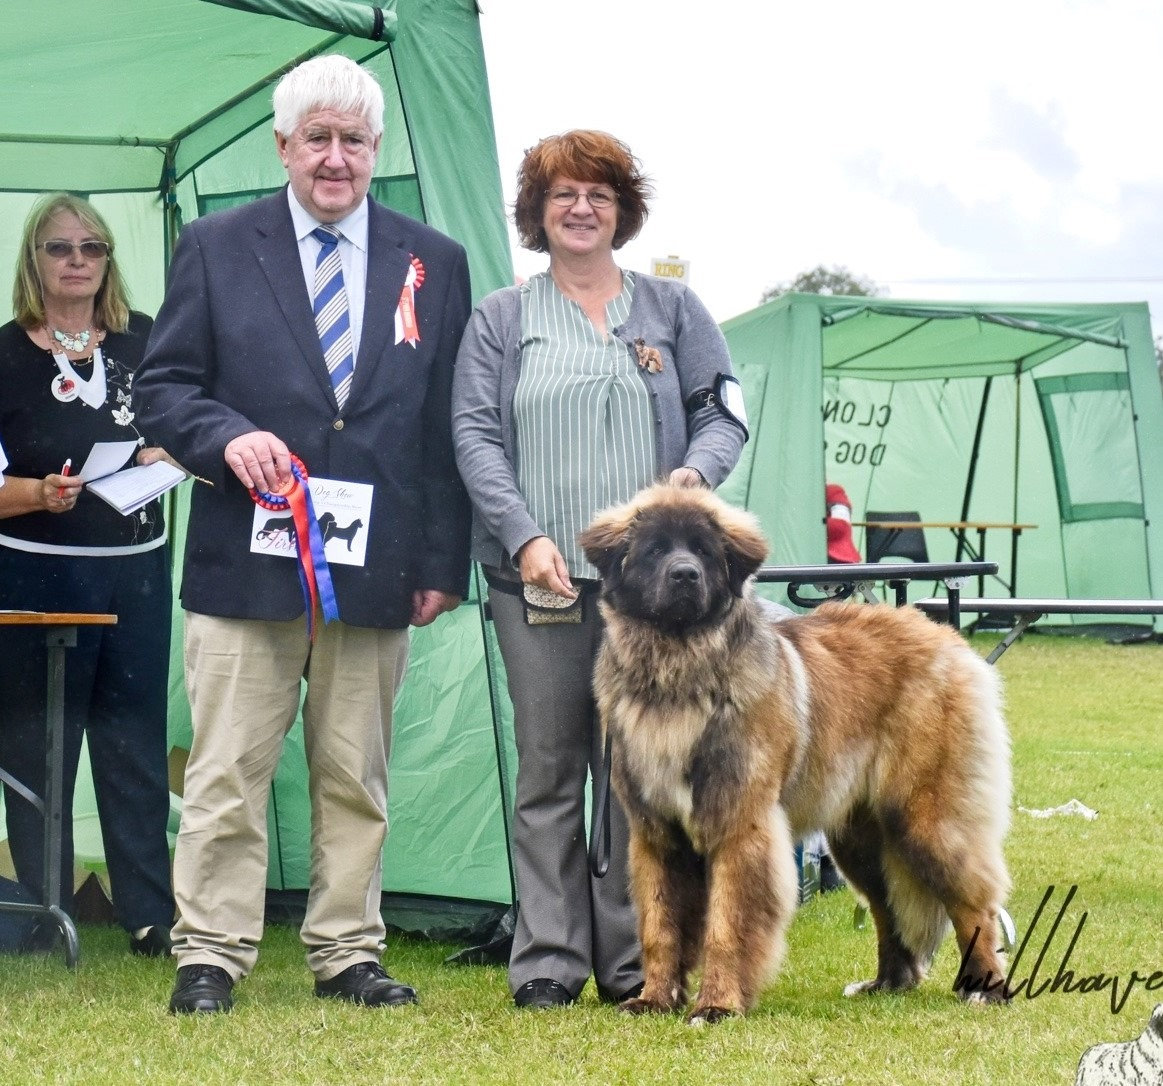 Kobo Best puppy leonberger club show 2019